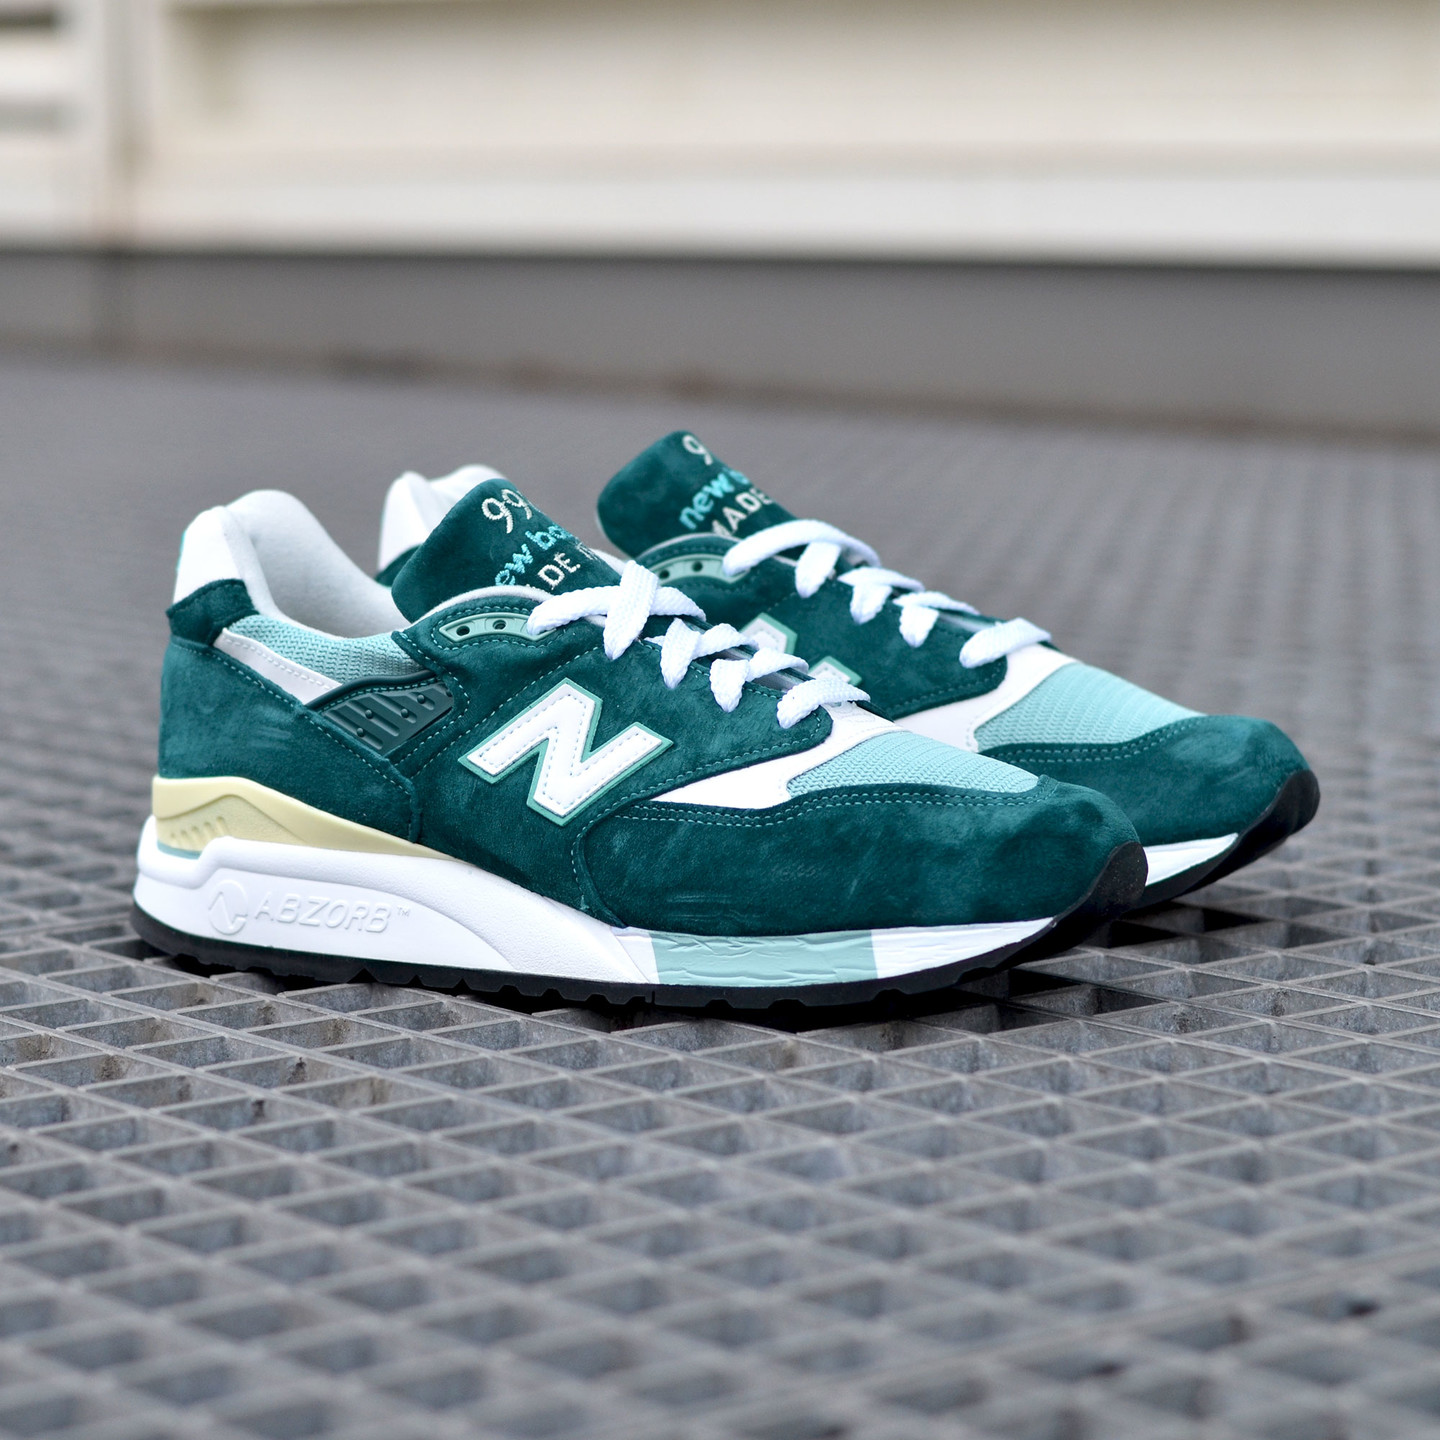 New Balance M998 Made in USA Sea Green / White M998CSAM-44